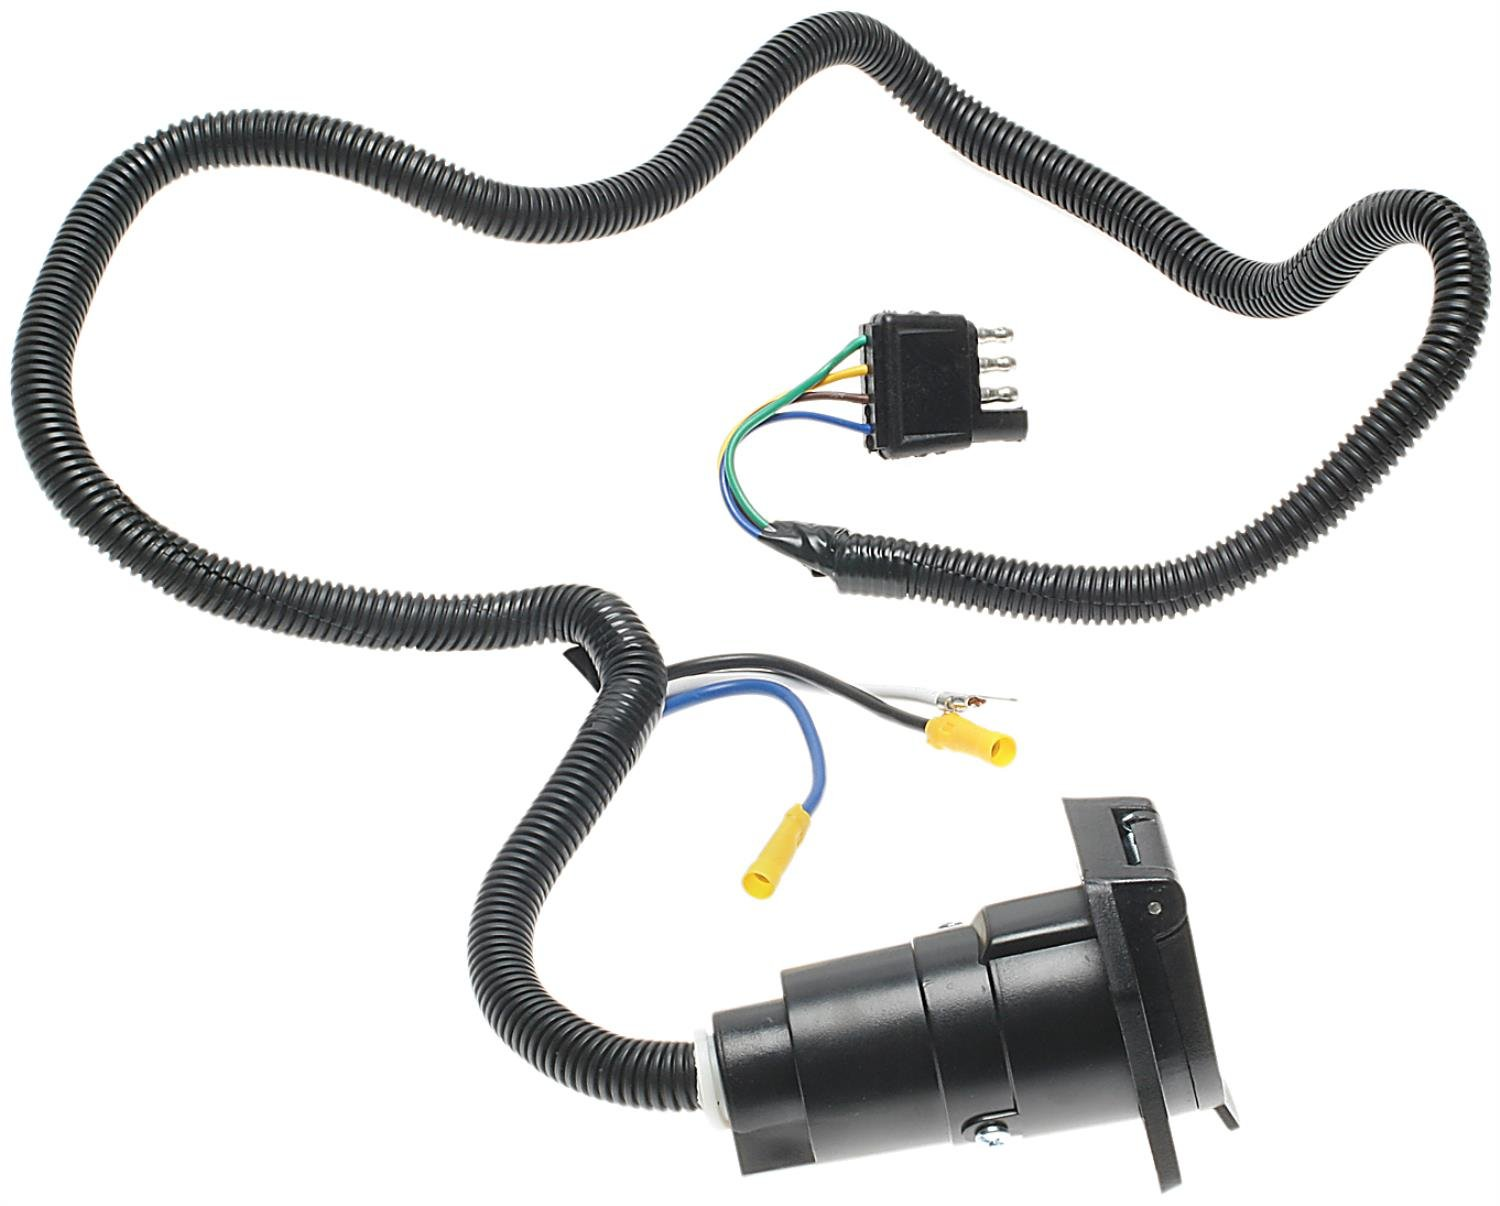 Acdelco Tc177 Professional Inline To Trailer Wiring Nissan Pathfinder Bracket Harness Connector Automotive